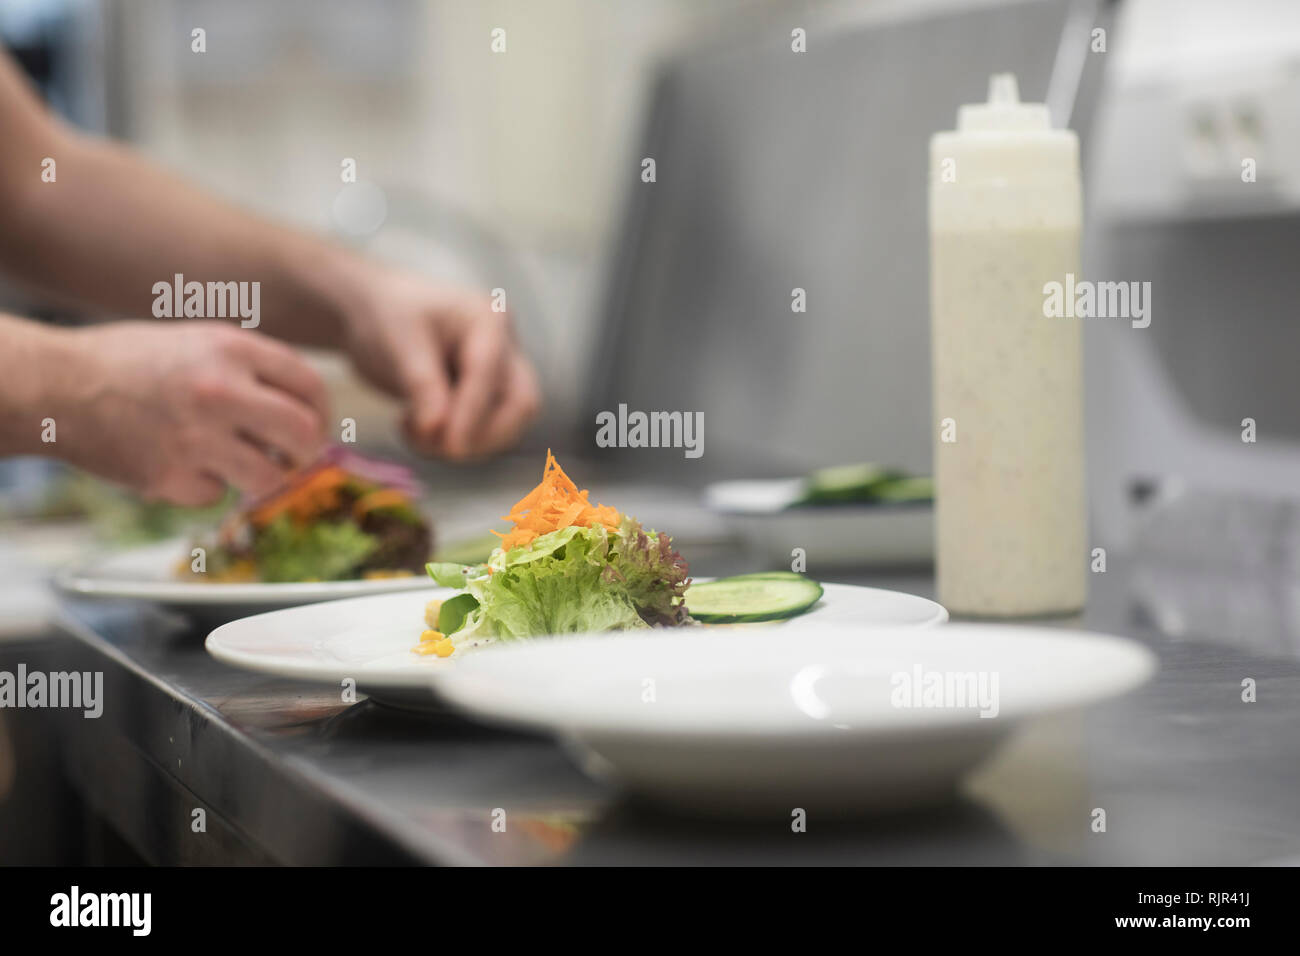 Fast food worker adding salad to hamburger in commercial kitchen, detail of hand - Stock Image